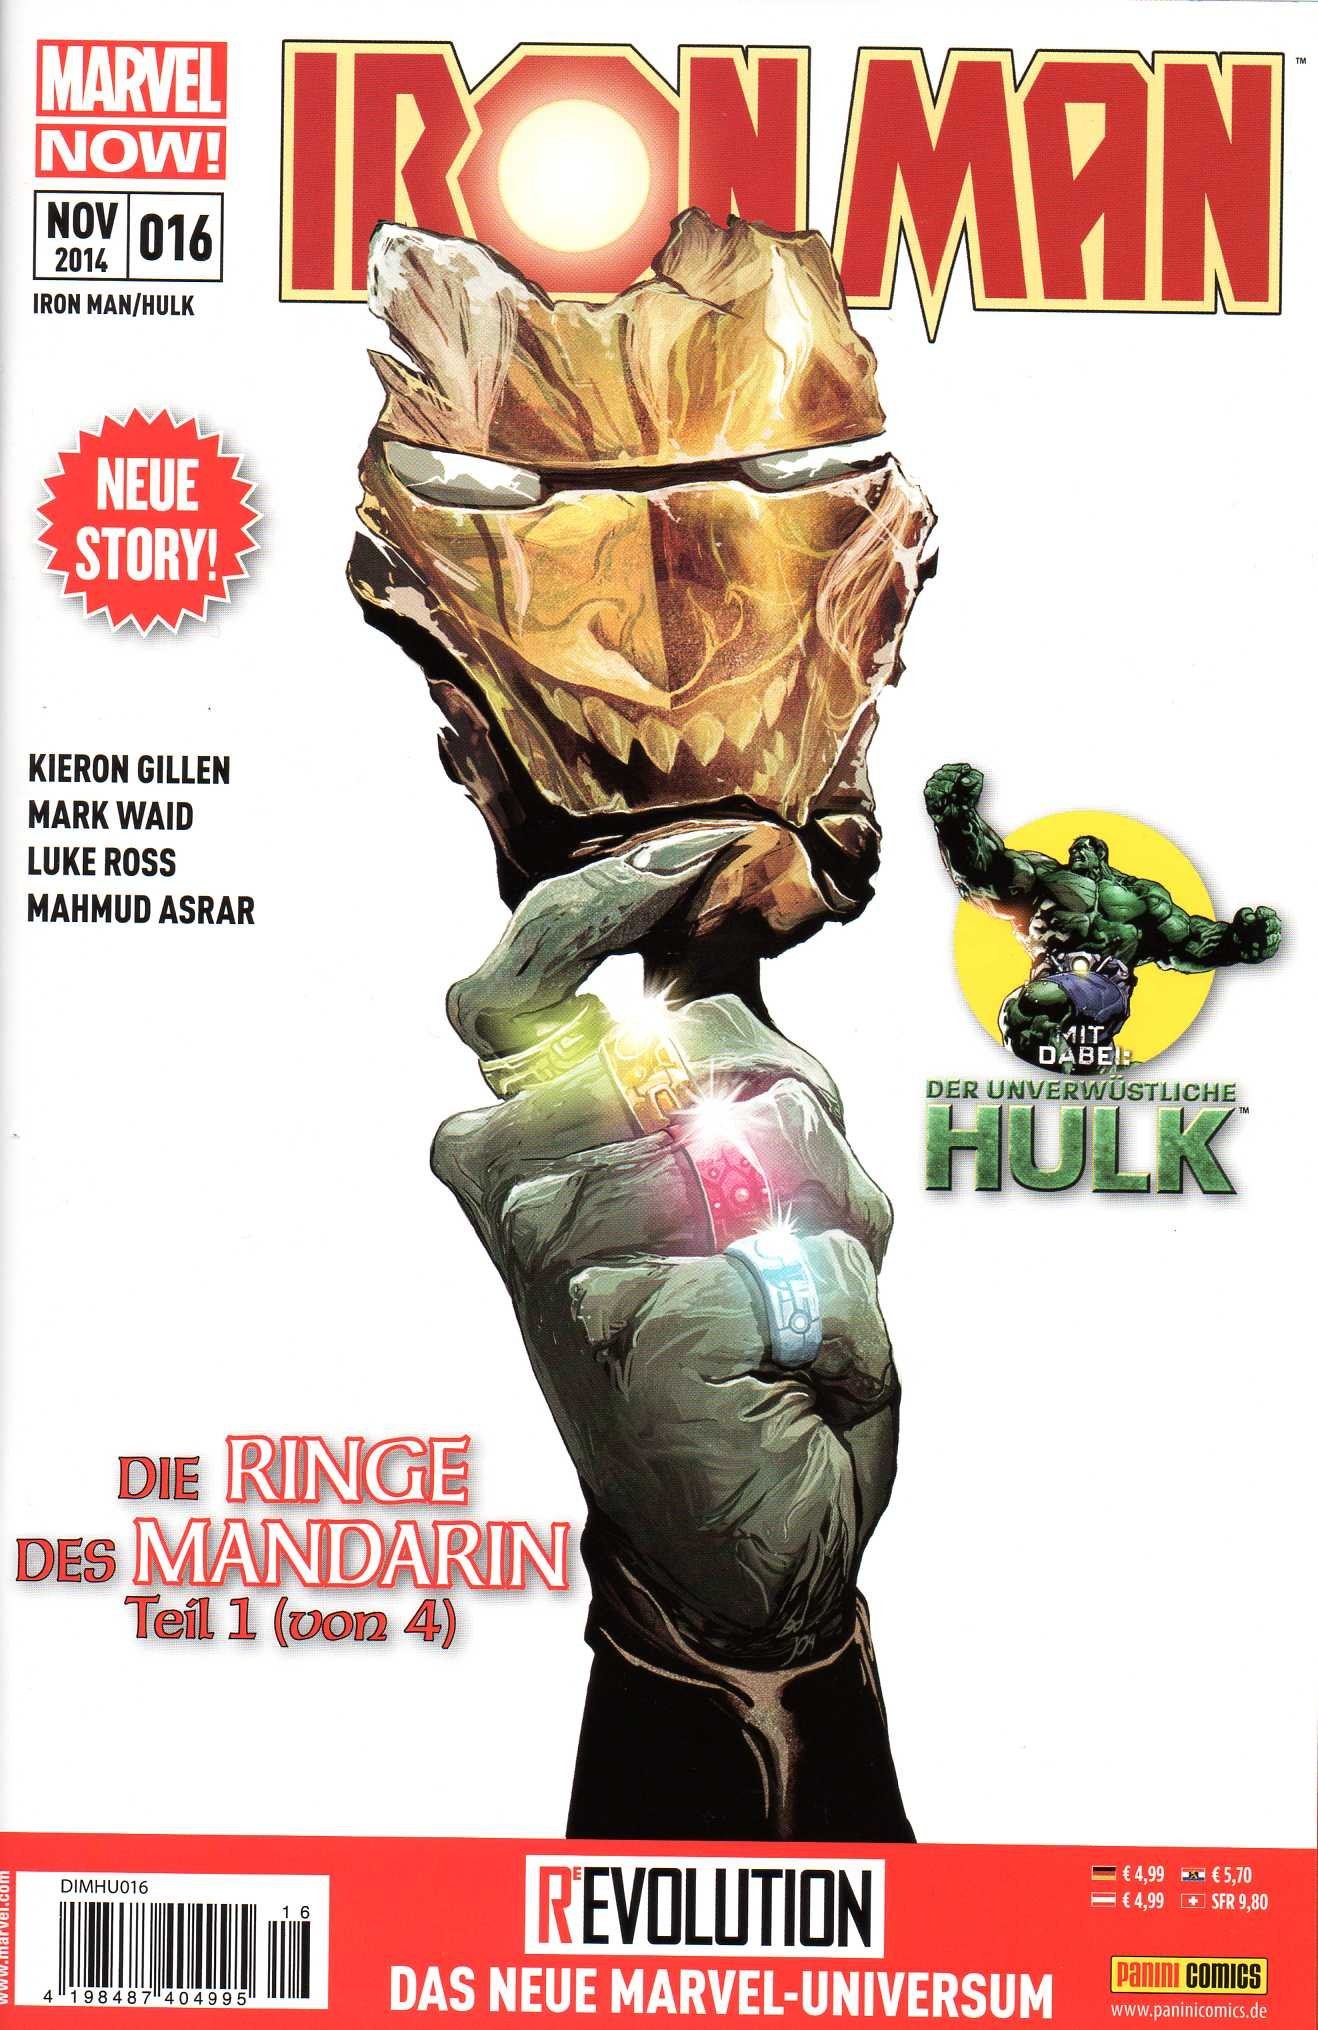 DISNEY MARVEL IRON MAN HULK Comic # 16 (Nov 2014): Menschheit in Gefahr! Comic – 2014 Panini B00OYRJVKA Belletristik - Comic Cartoon